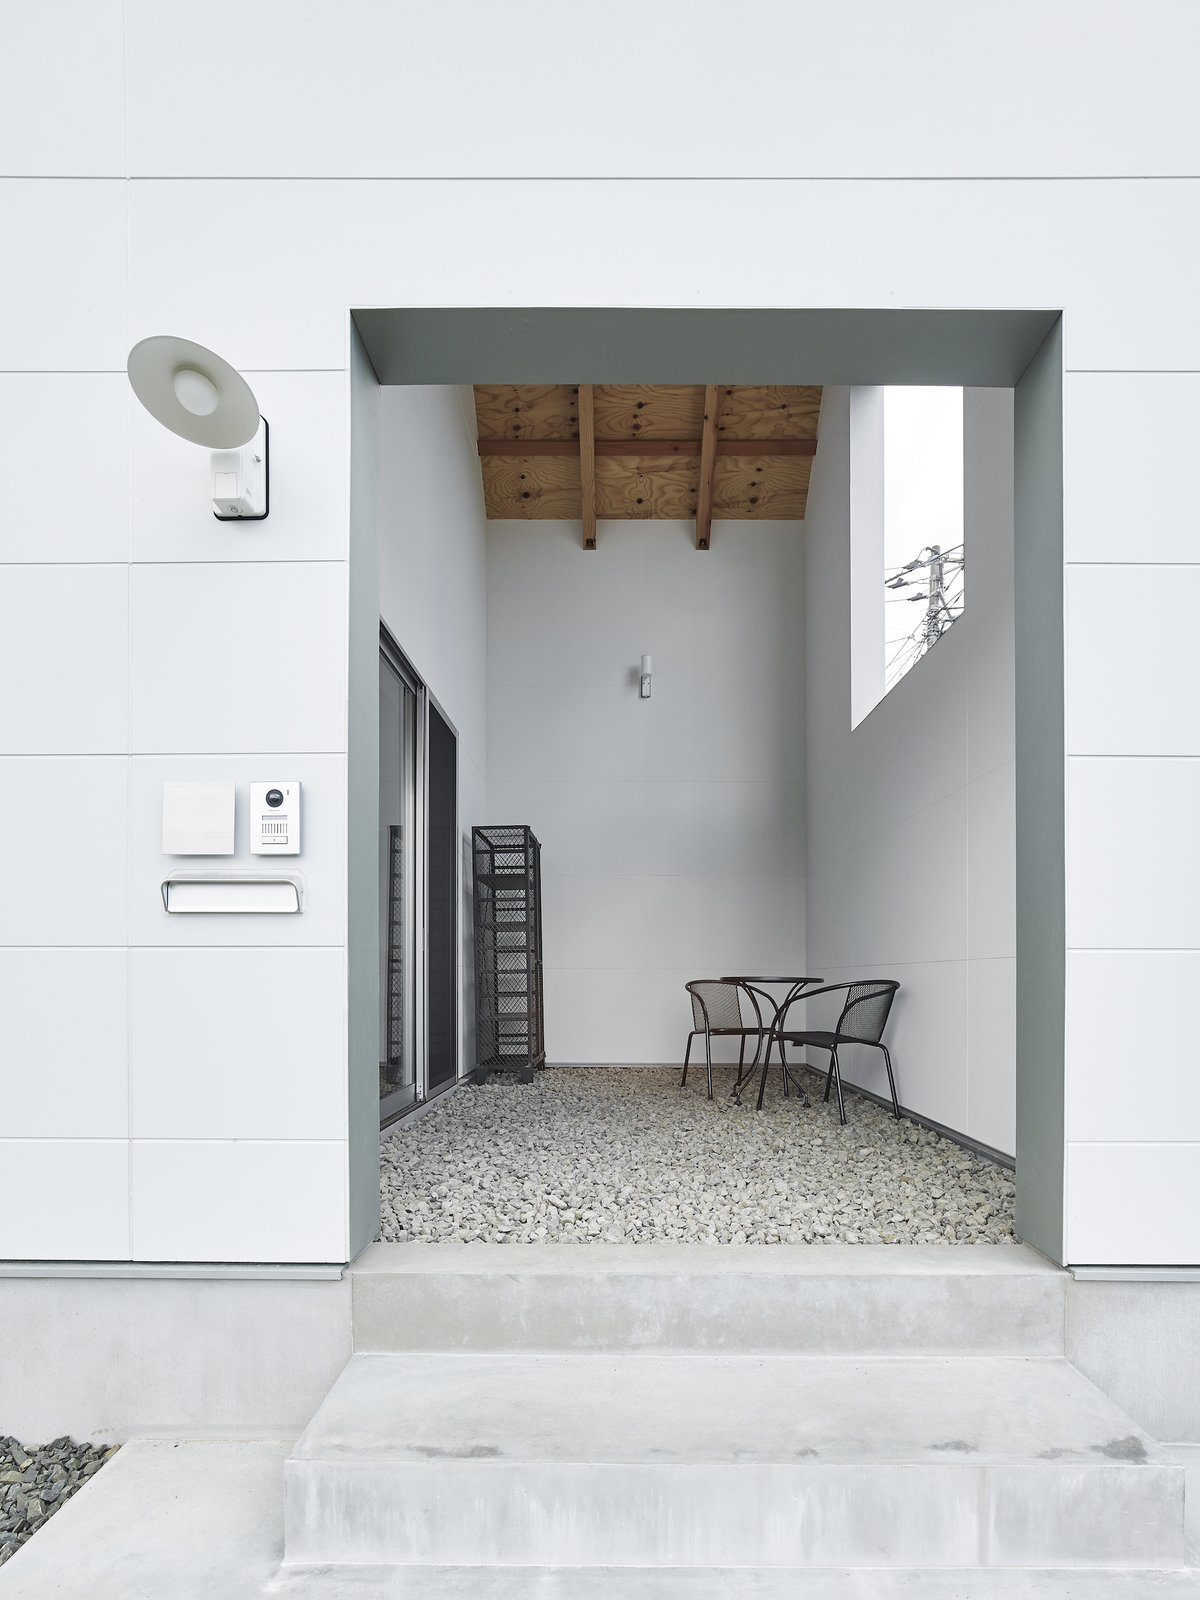 House in Suwamachi is a minimal residence located in Tokyo, Japan, designed by Kazuya Saito Architects.The site is narrower than most, and are sandwiched between two busy roads, as well a railroad tracks. As a result, the architects wanted to limit line of sight, noise, and wind. The result is an interior with high-ceilings in order to open up the space and maintain natural light, as well as an airy entrance area. Tagged: Outdoor, Hardscapes, and Walkways.  Photo 9 of 9 in House in Suwamachi by Kazuya Saito Architects